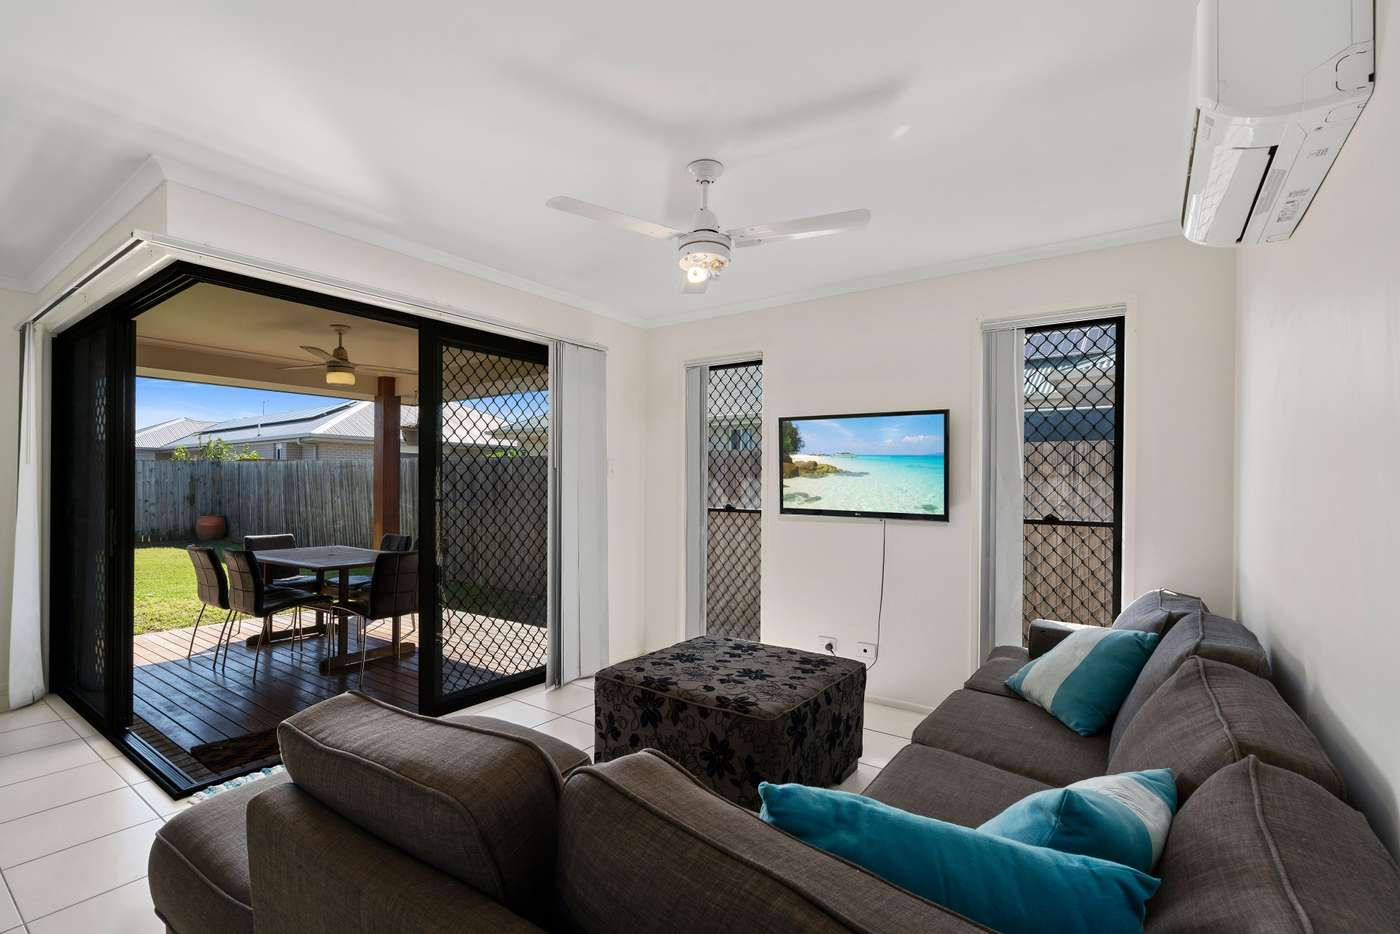 Fifth view of Homely house listing, 26 Lehmann Circuit, Caboolture South QLD 4510